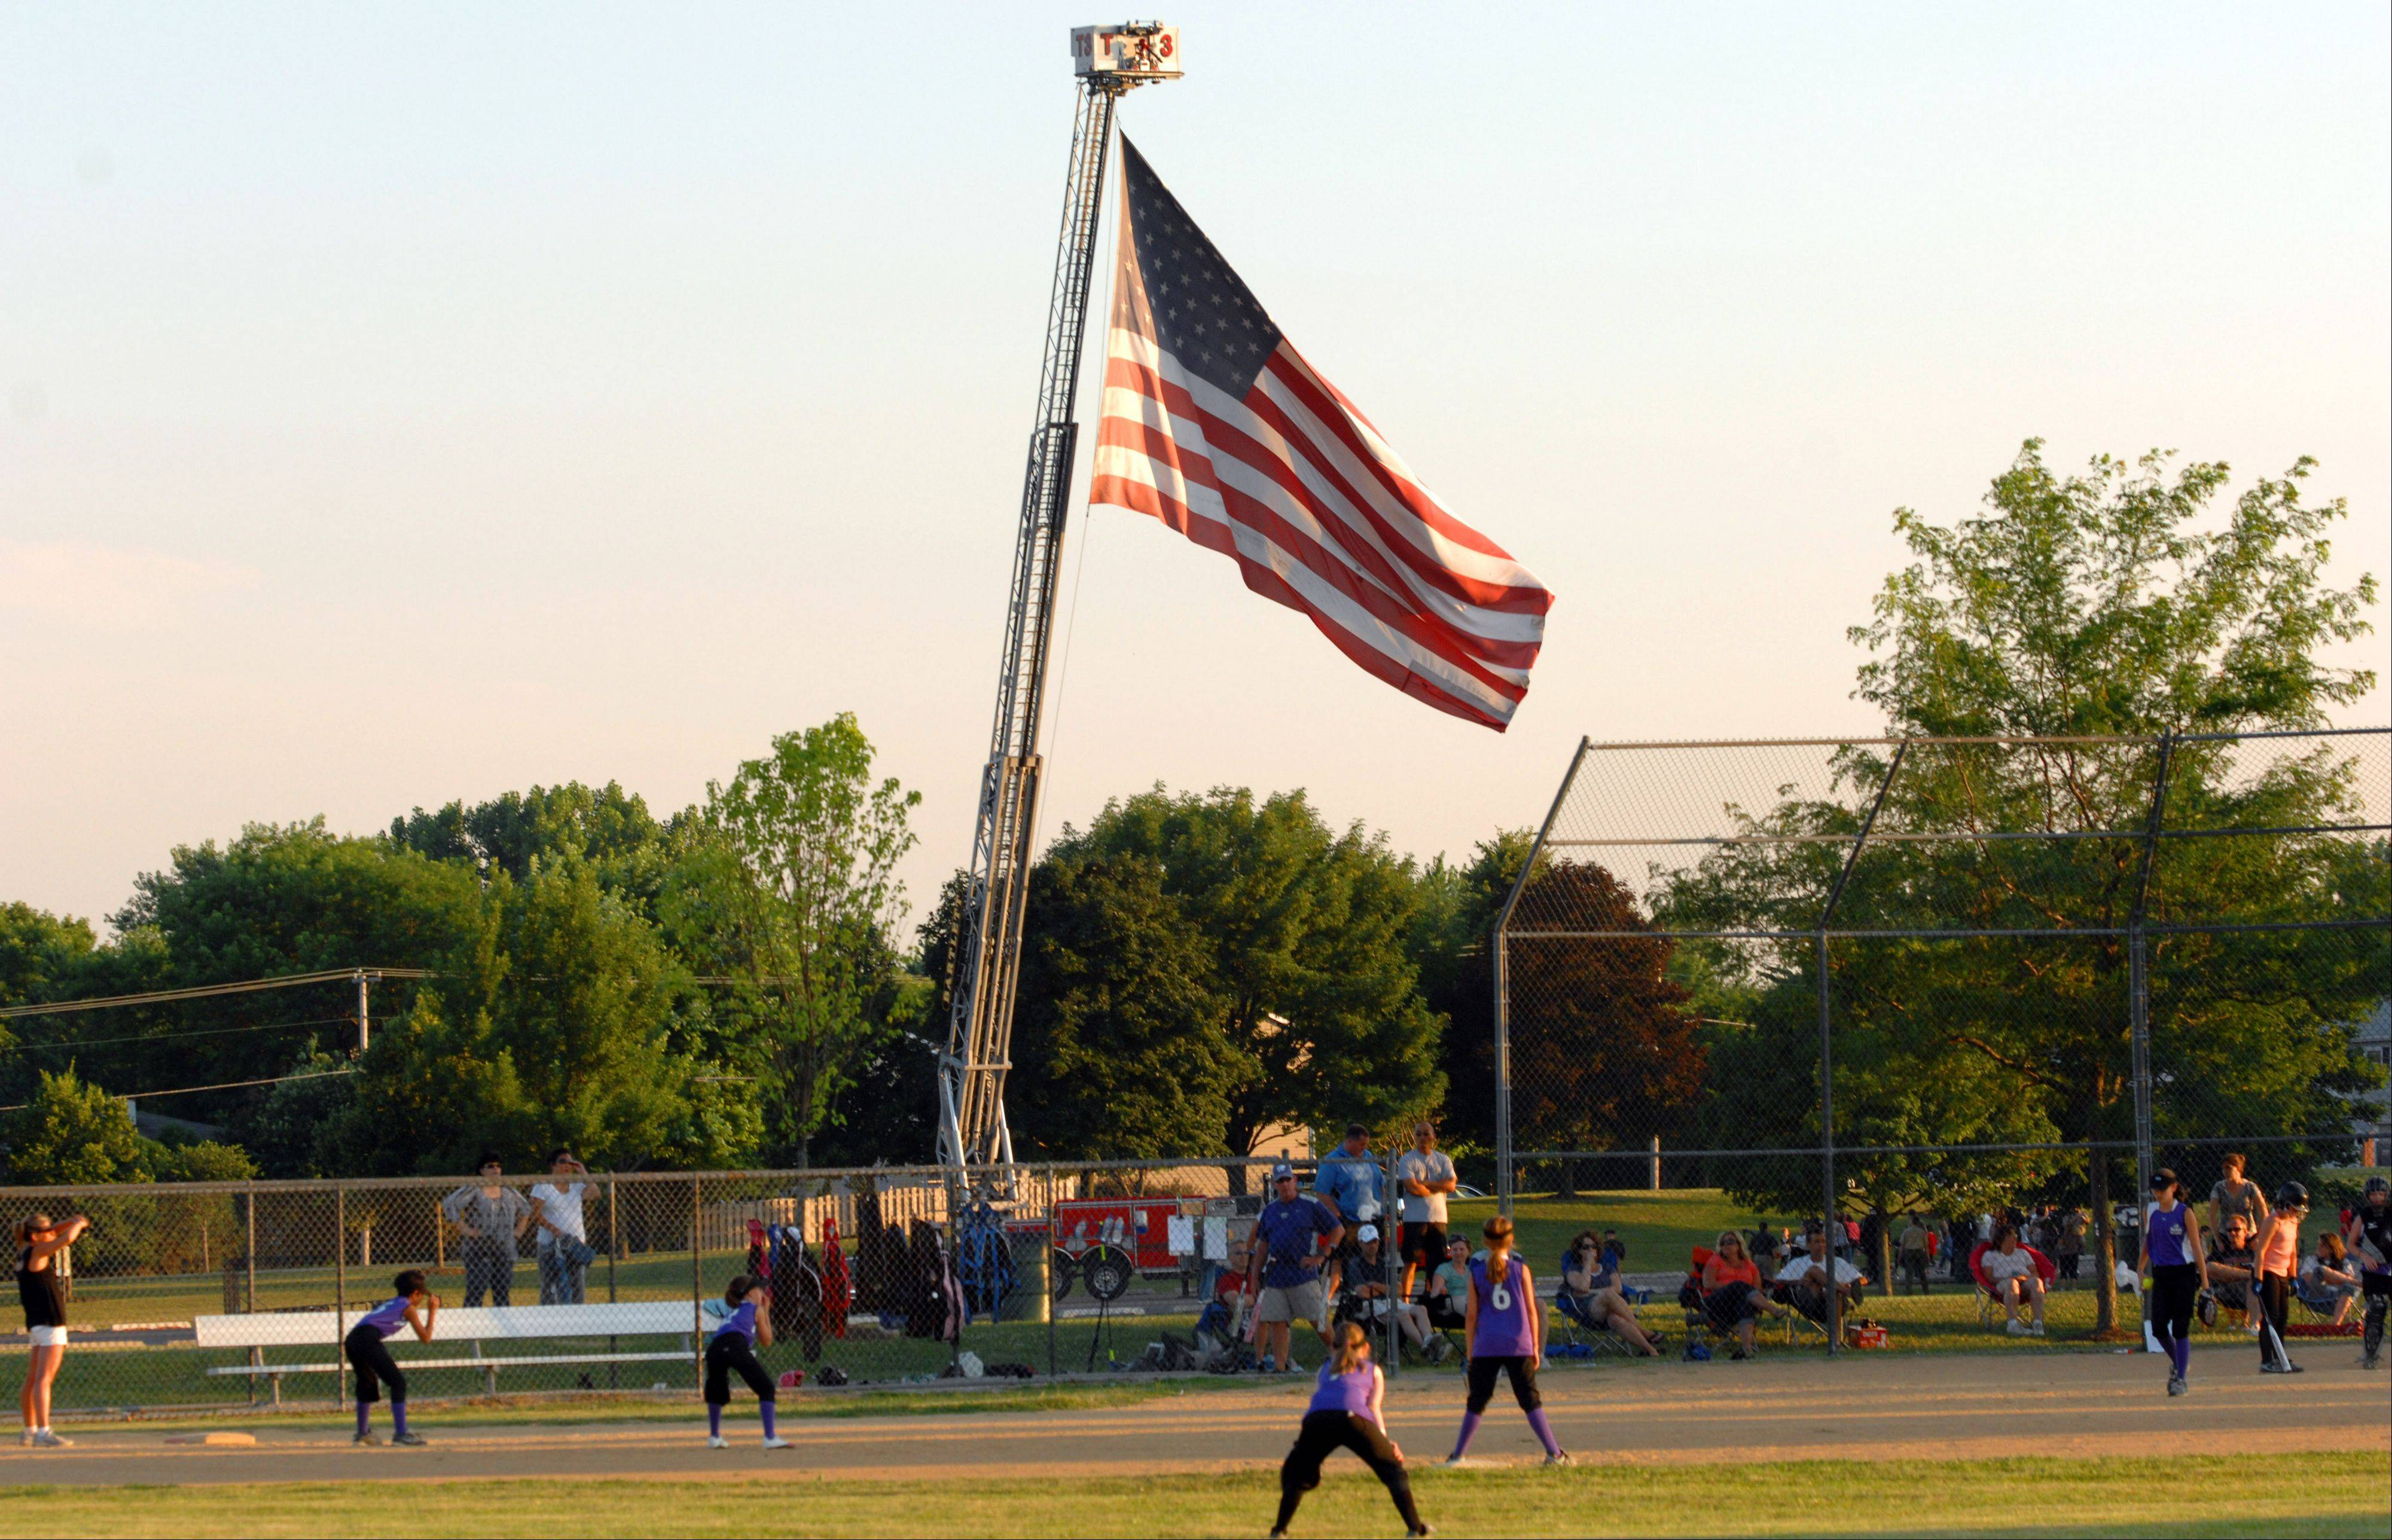 Baseball and the American flag come together in Bartlett.